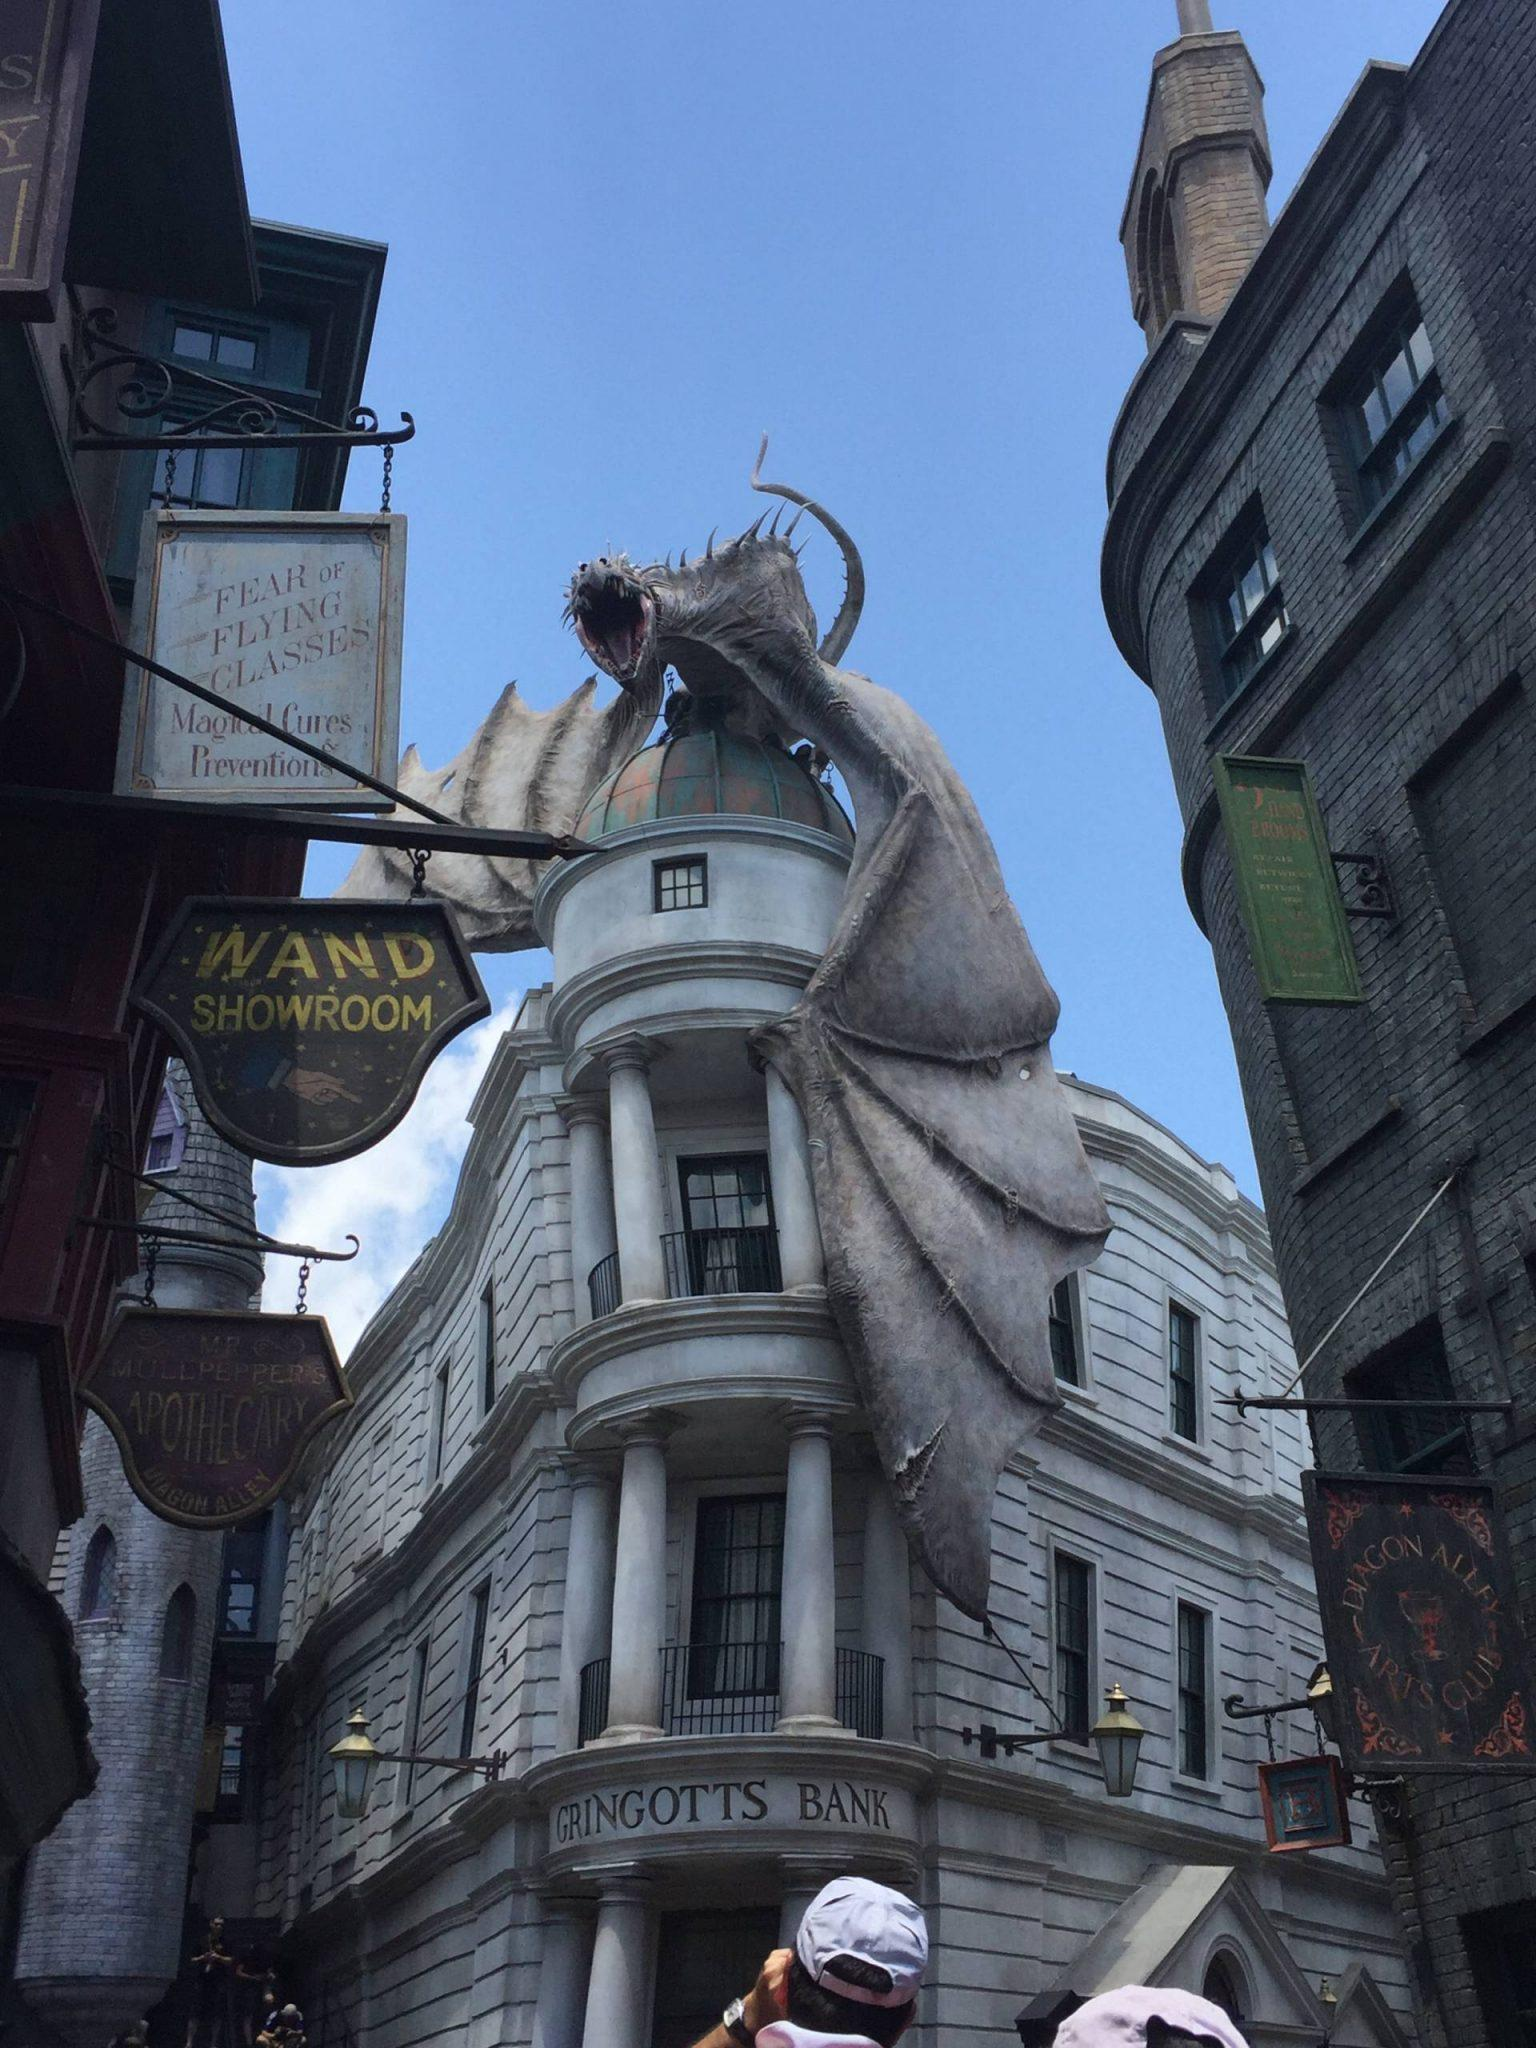 10 Magical Experiences At The Wizarding World Of Harry Potter In Universal Studios Florida